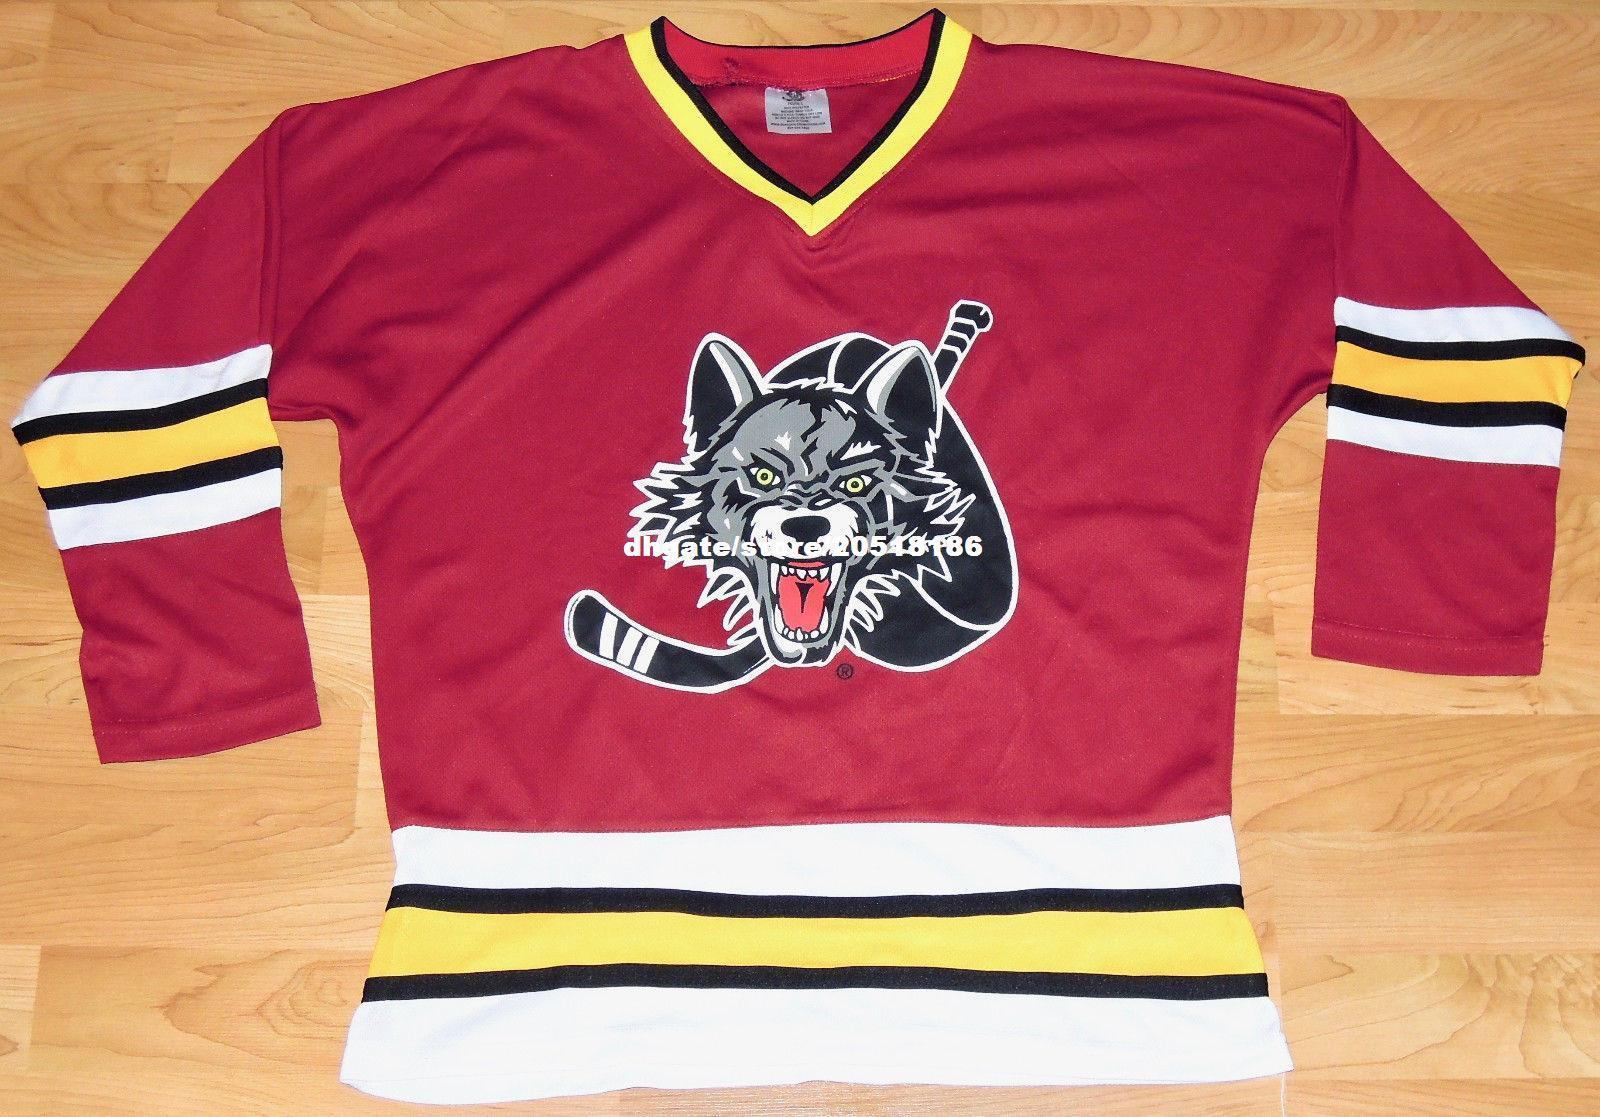 2019 Cheap Custom Chicago Wolves Minor League Hockey Jerseys PRINTED  GRAPHIC EUC Stitched Men S Hockey Jersey From Nfljersey1 53f7eb52ae8